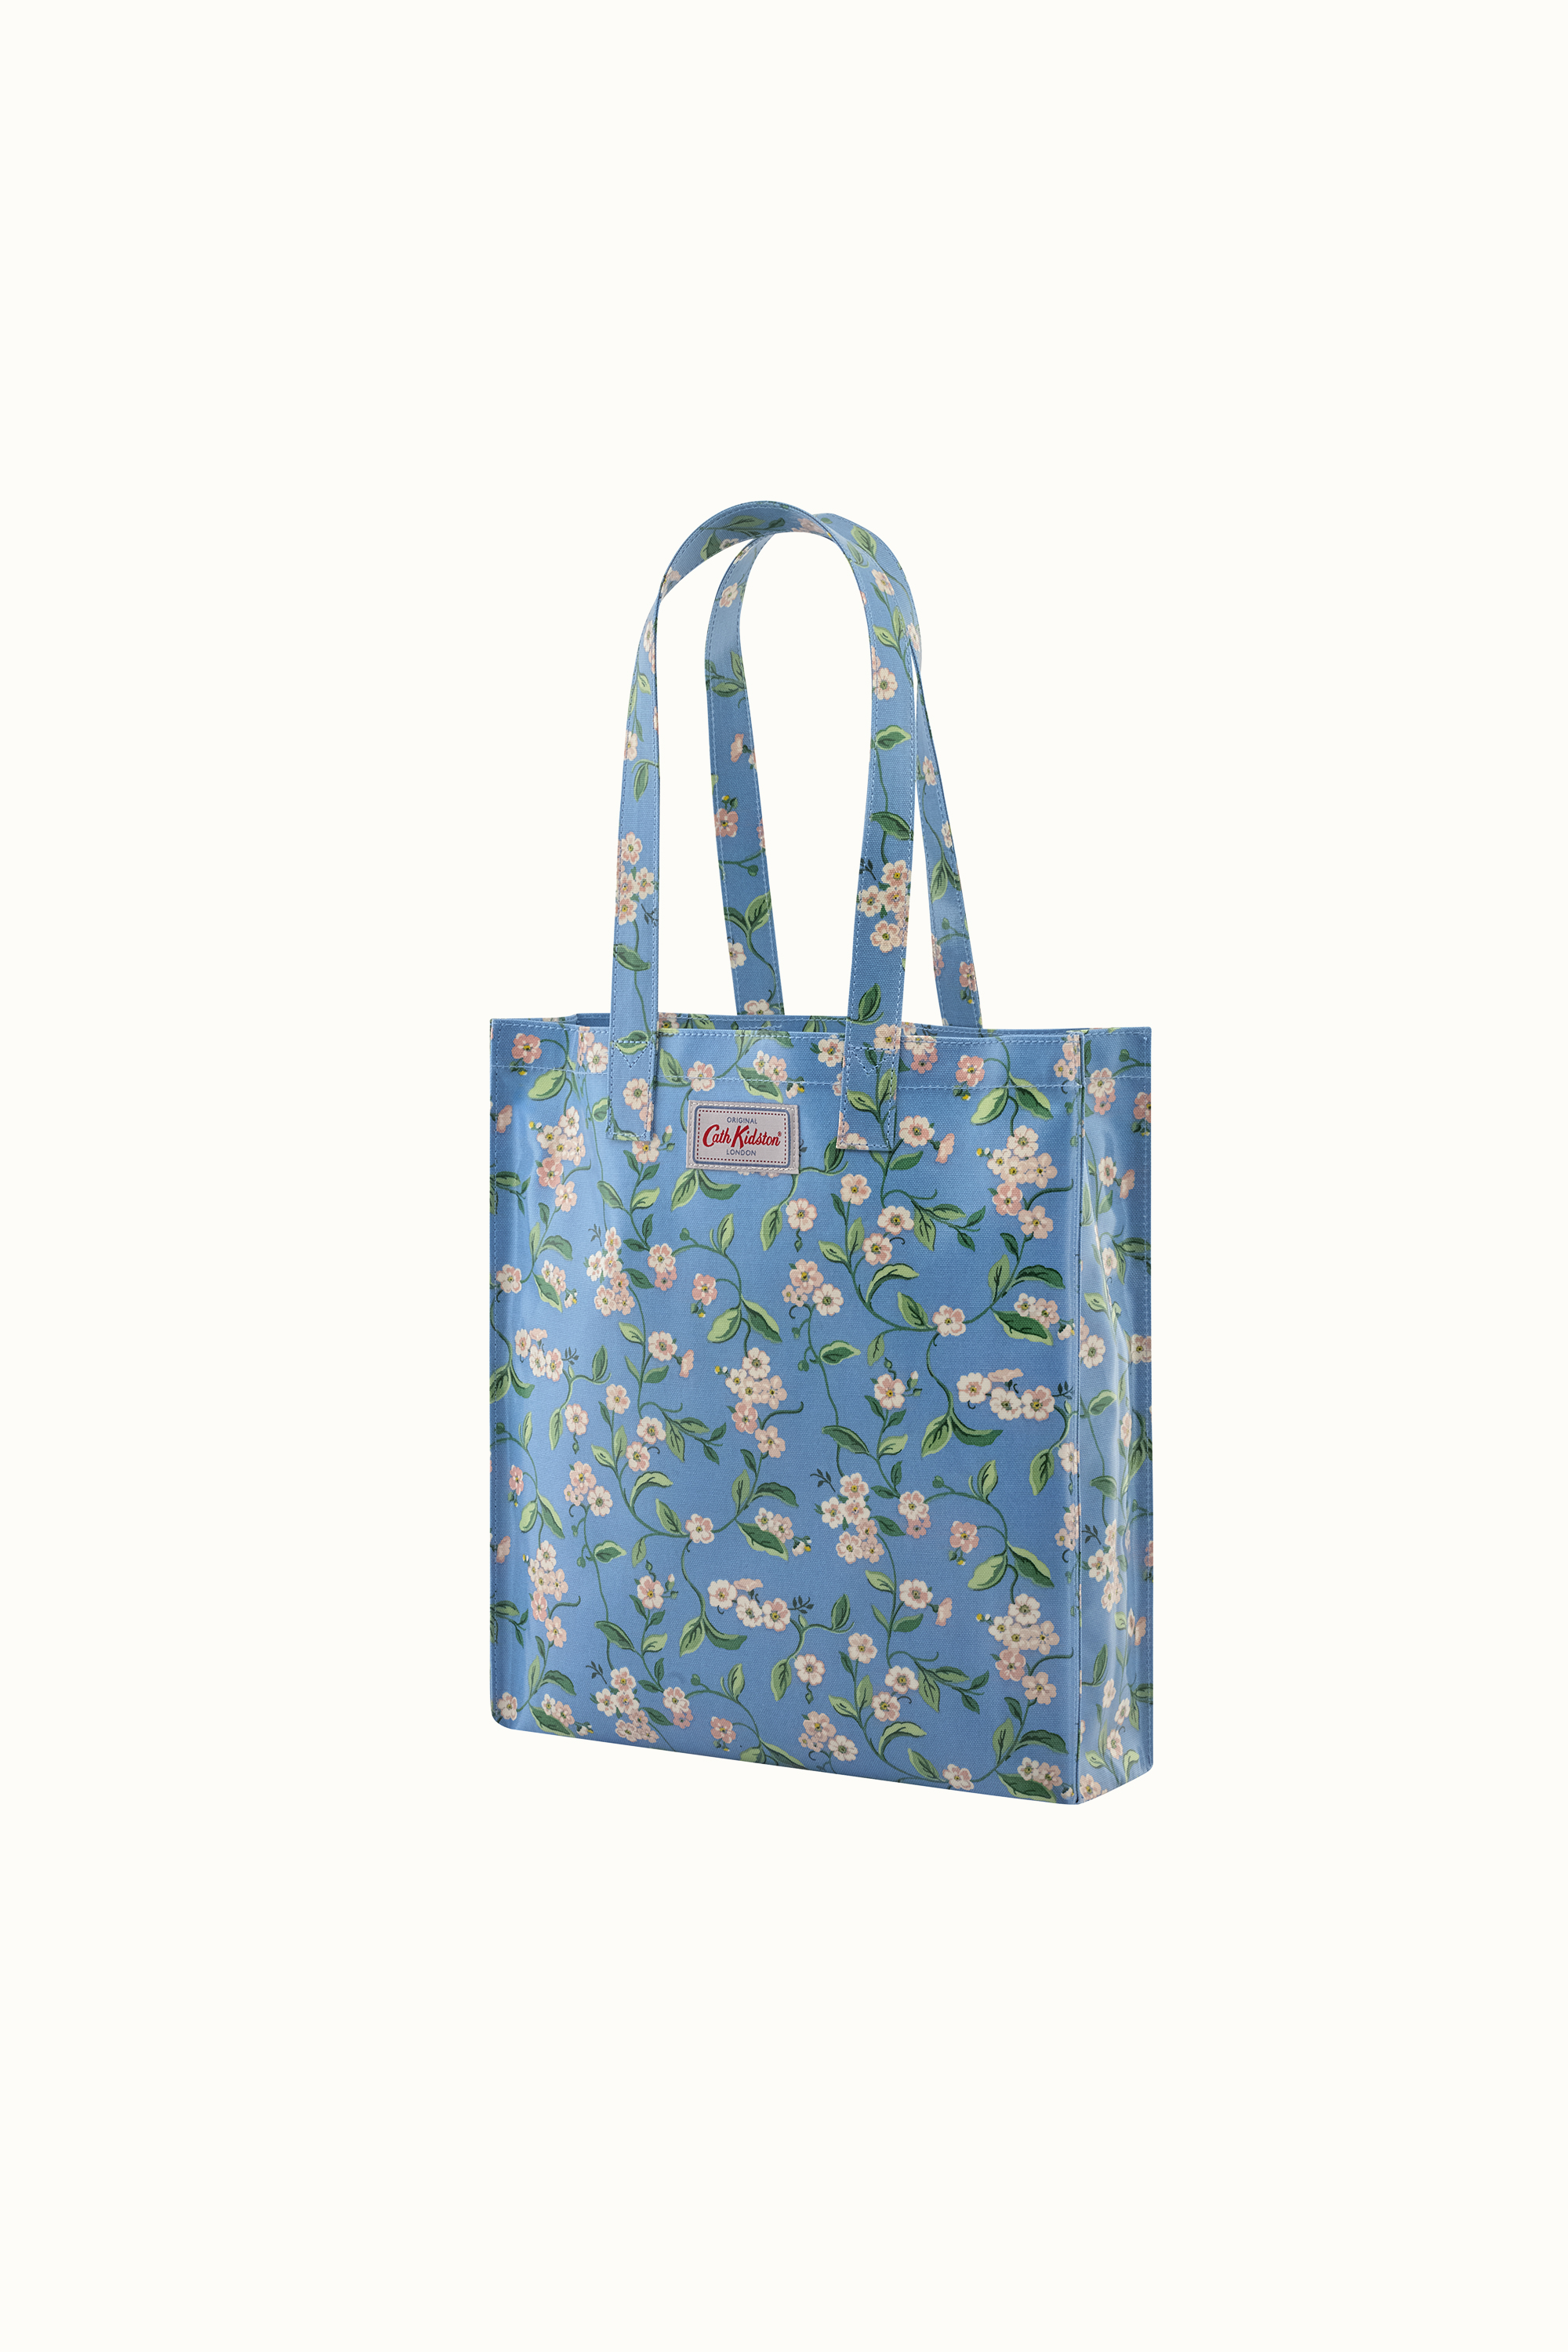 Cath Kidston Forget Me Not Shiny Bookbag with Gusset in Cream